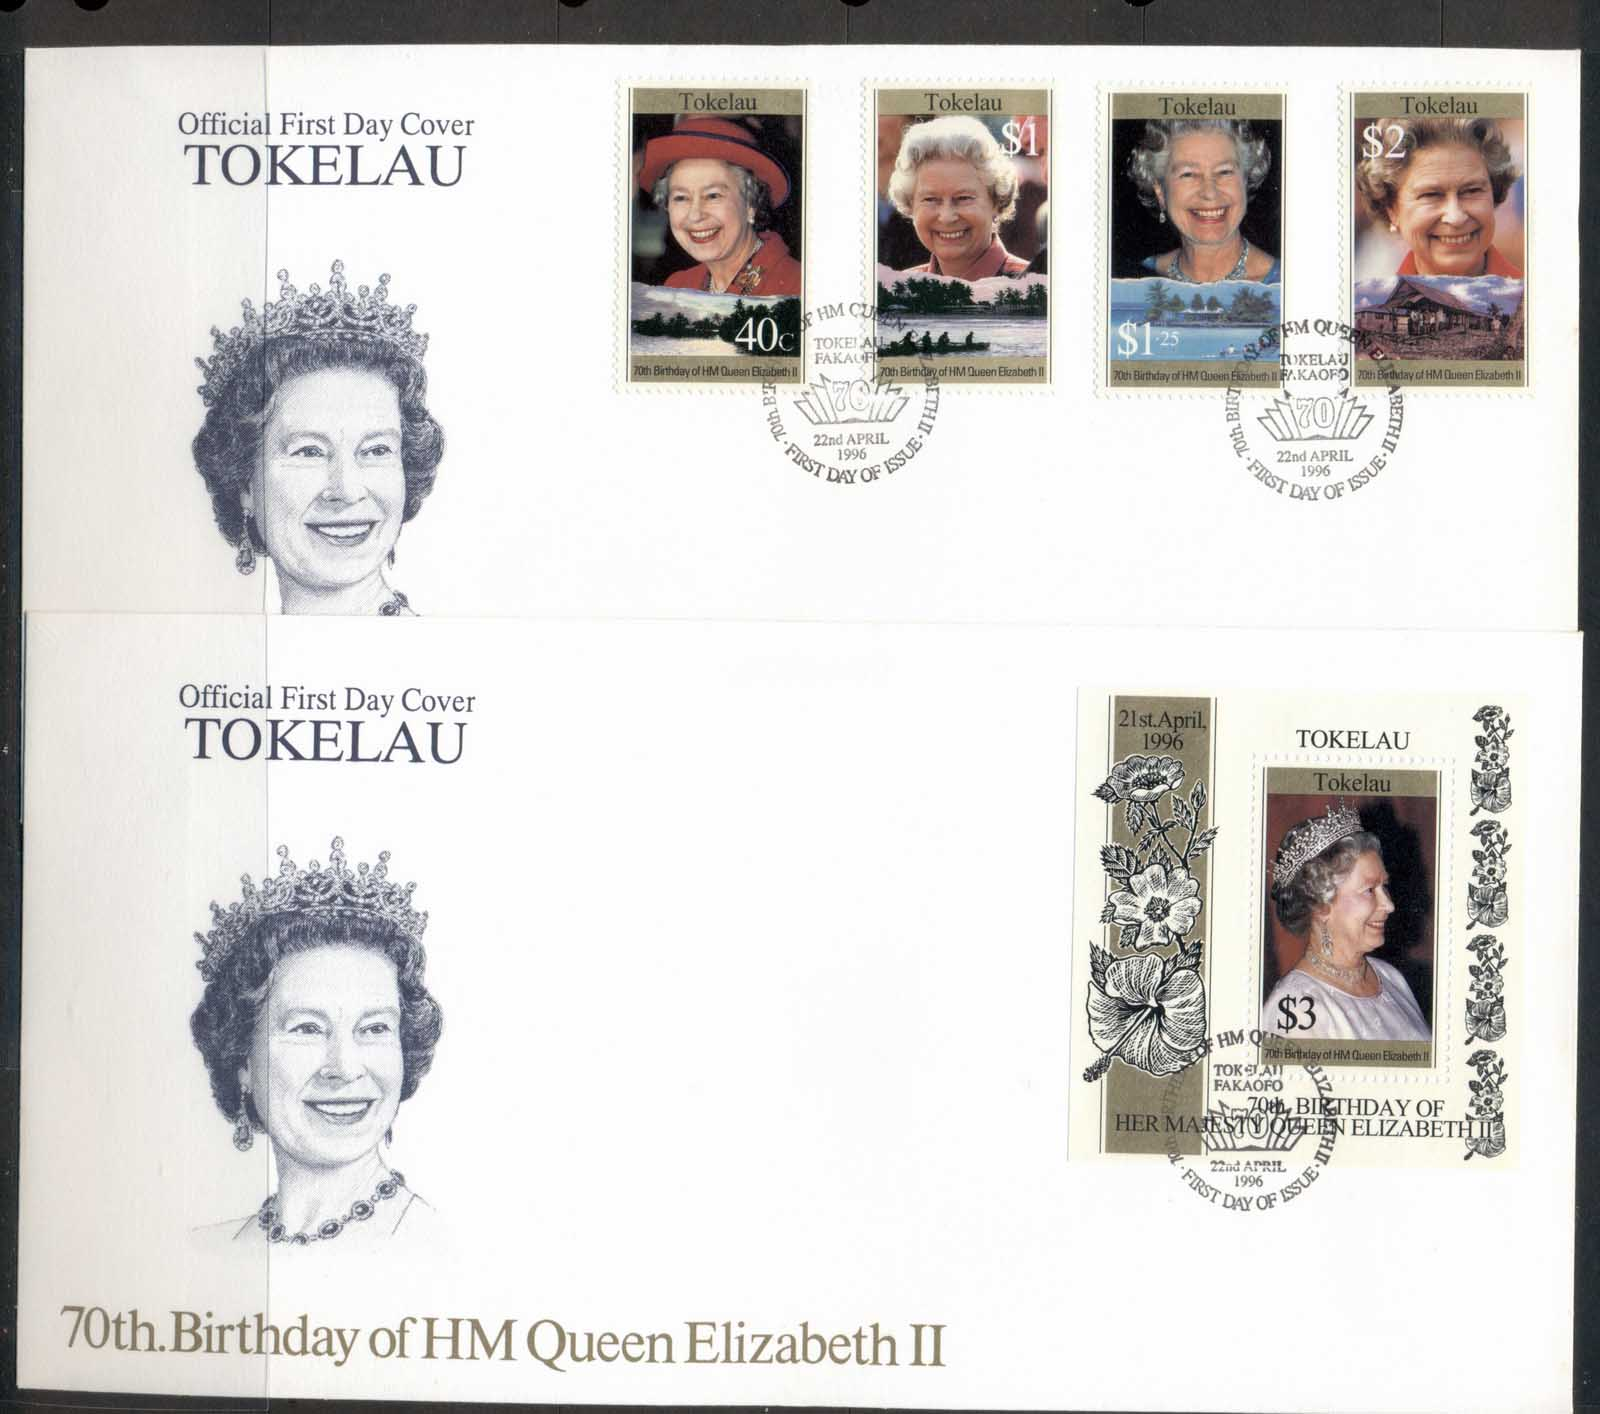 Tokelau 1996 QEII 70th Birthday 2x FDC